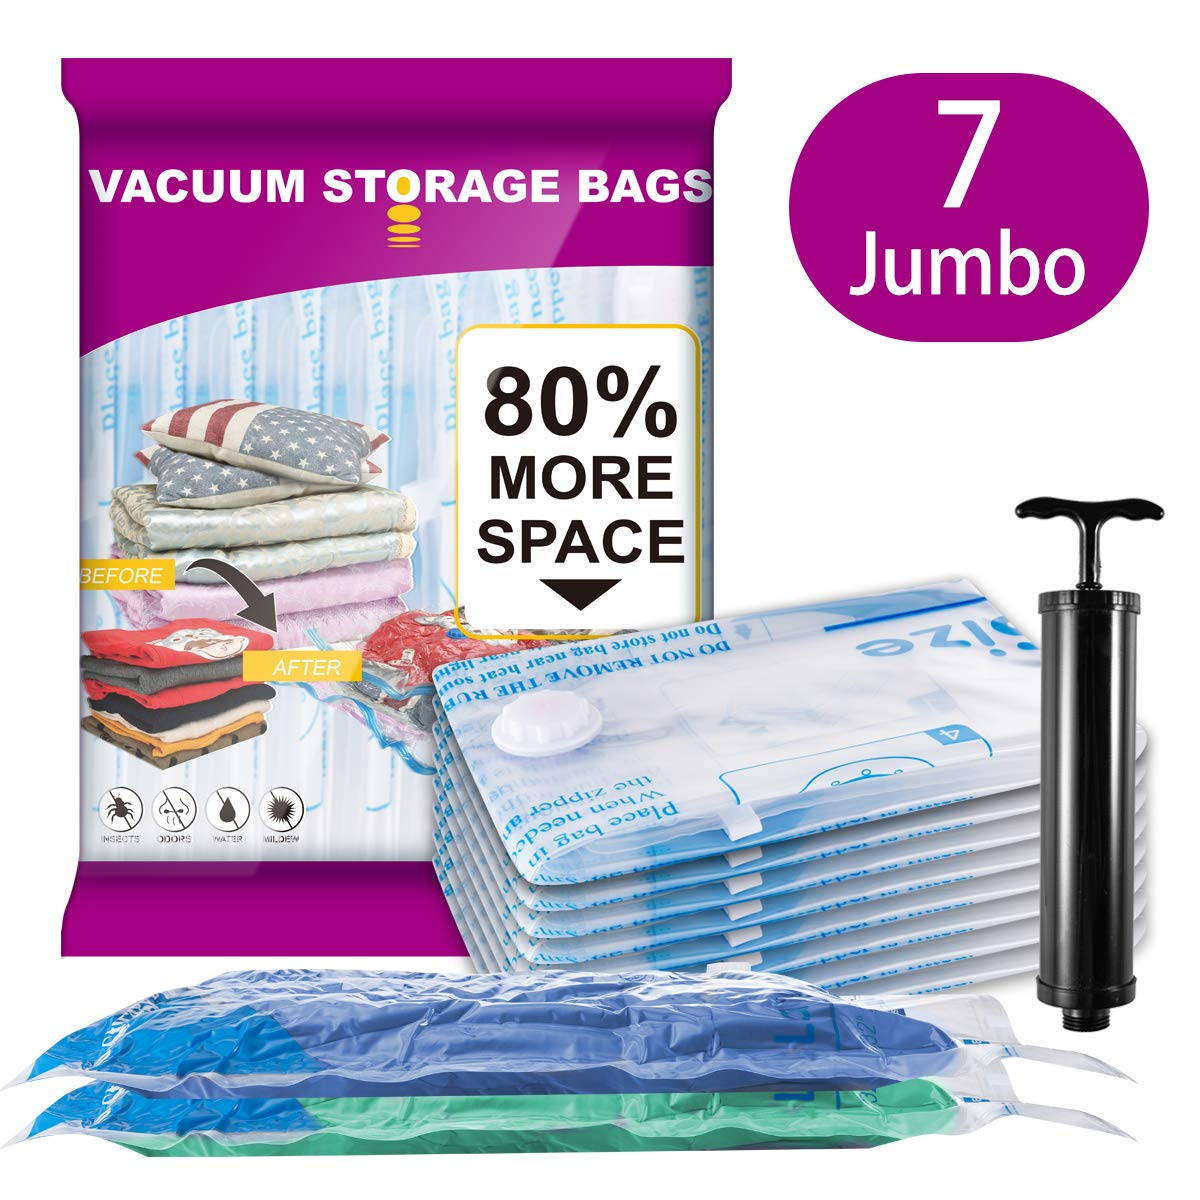 """Meiqi 7 Jumbo Vacuum Storage Bags (40""""x30"""") Space Saver Bags for Clothes Pillows Blankets Comforters with Hand Pump for Travel"""